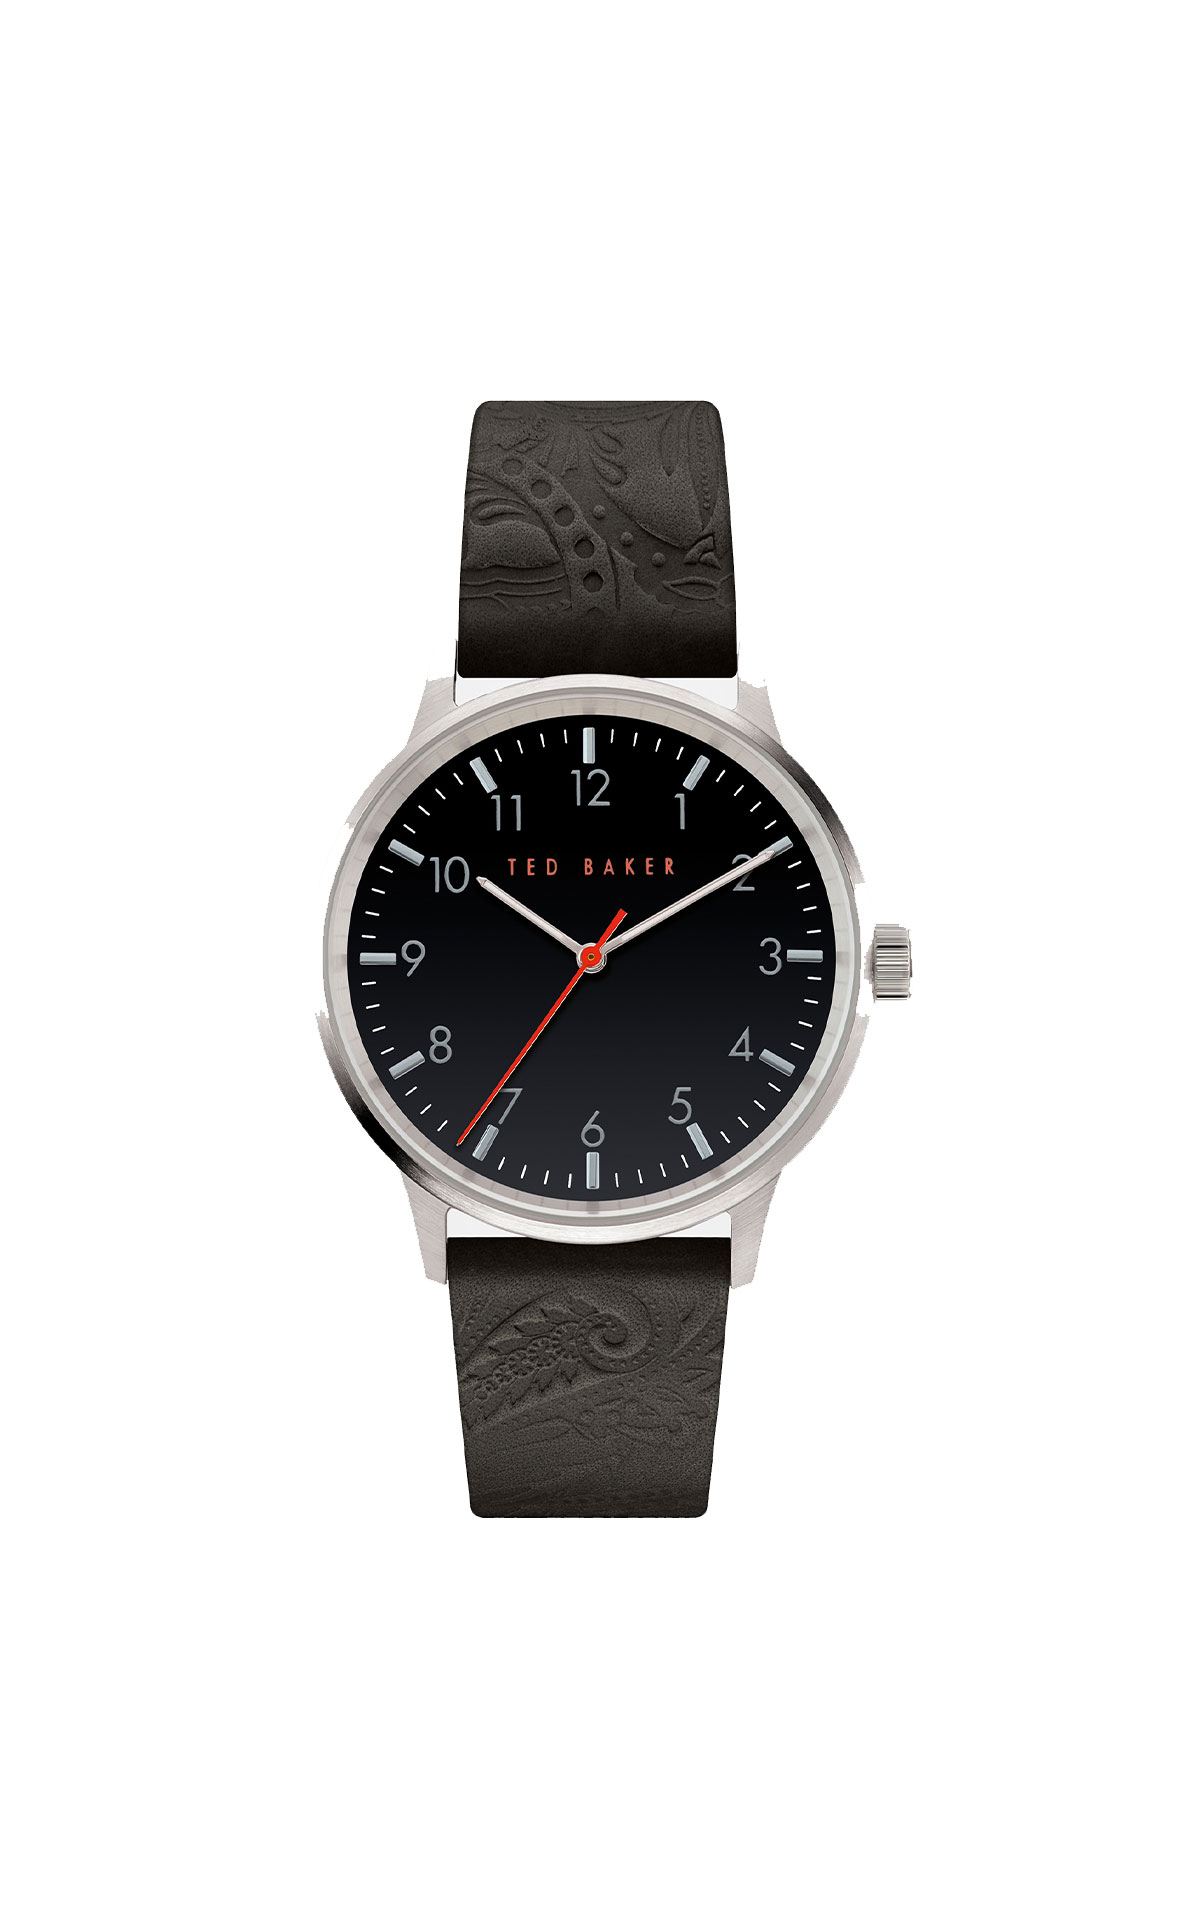 Ted Baker Cosmoo embossed leather watch from Bicester Village